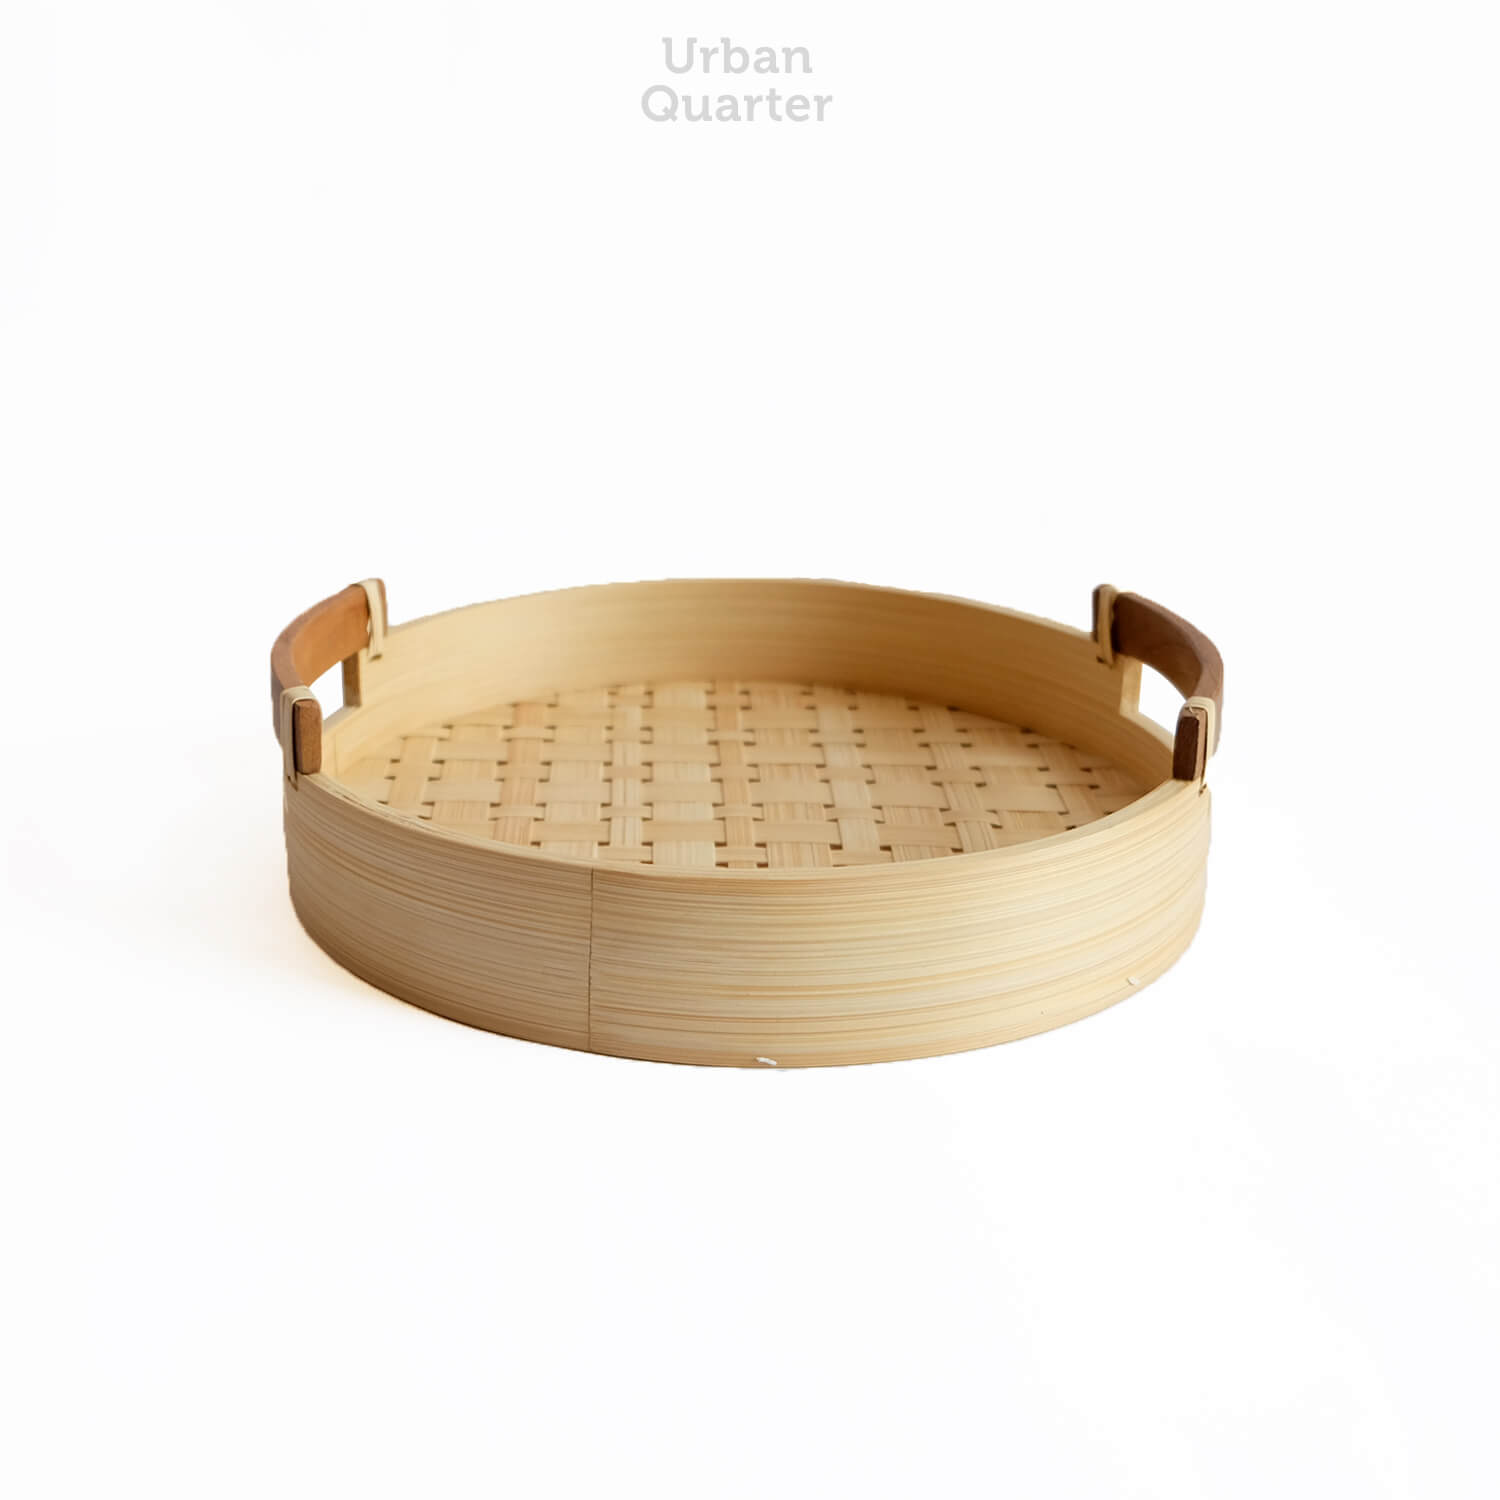 Bamboo Suka Tray Collection by Studio Dapur, Trays, Studio Dapur - LIESAS